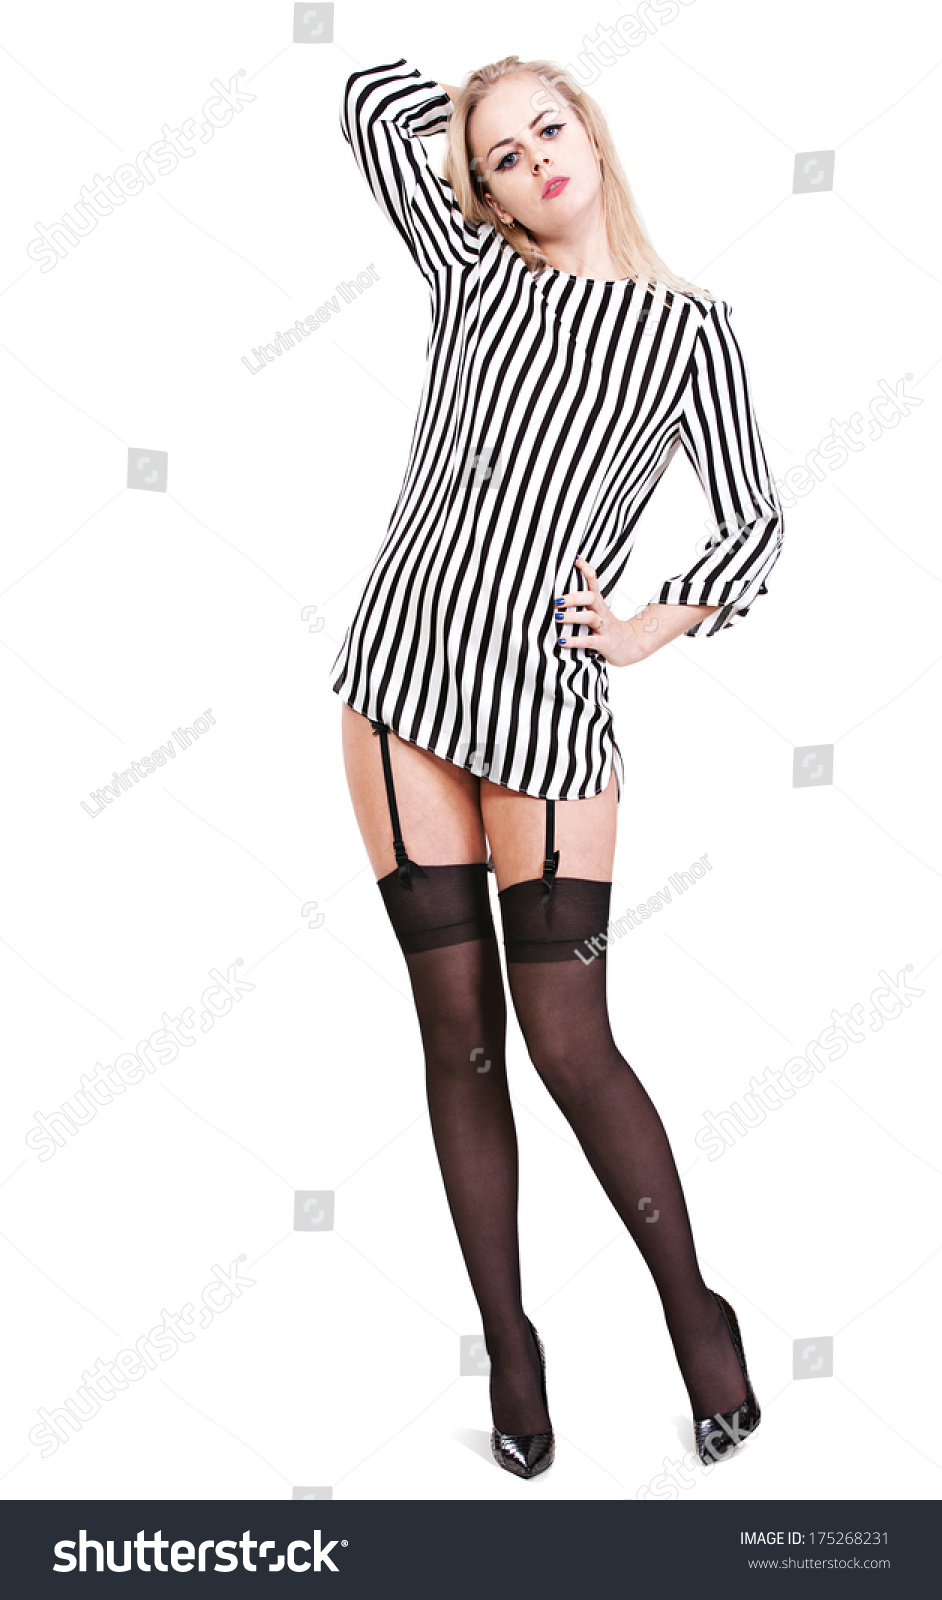 Young Girl In A Striped Blouse And Black Stockings On An Isolated White Background In Full